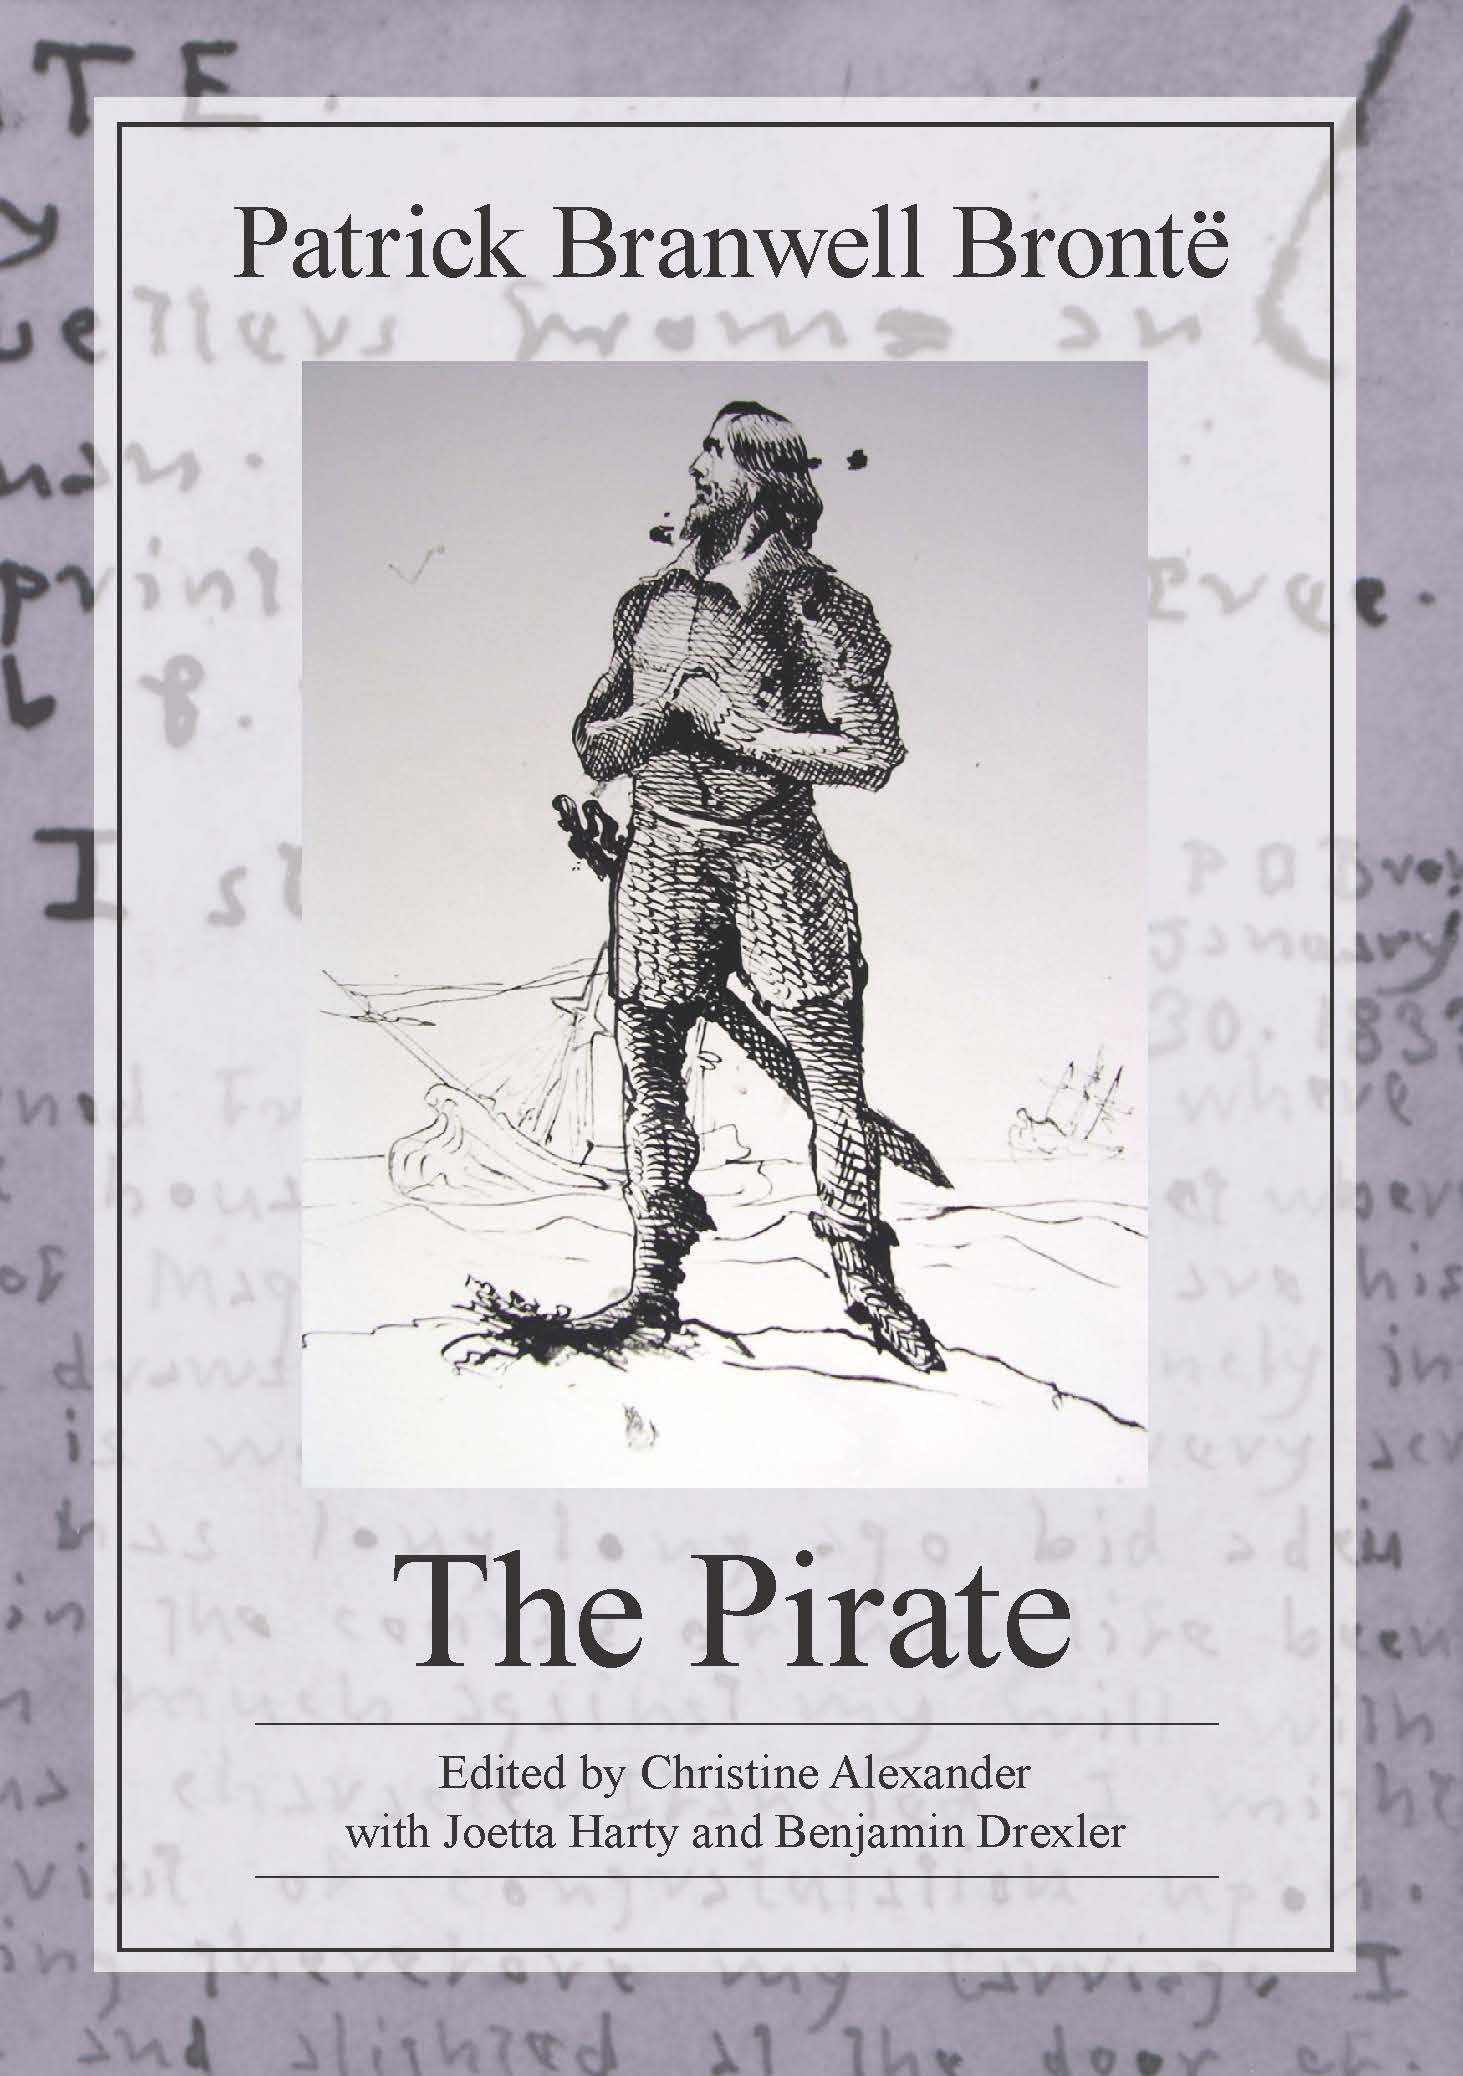 The Pirate by Branwell Brontë